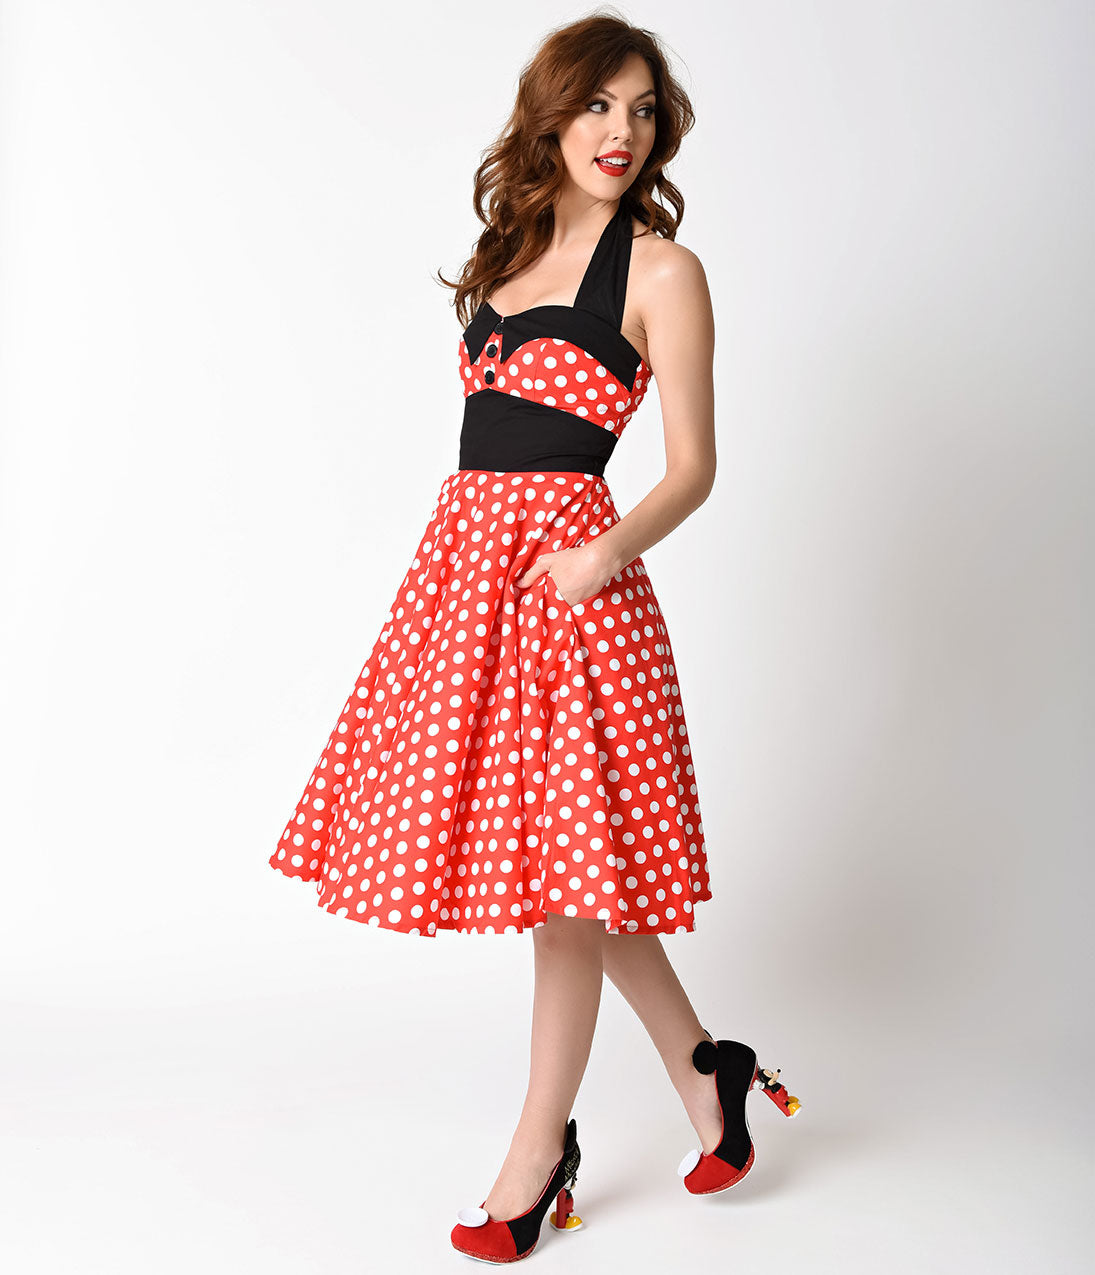 1950s 50s Costumes- Poodle Skirts, Grease, Monroe, Pin up, I Love Lucy 1950s Style Red  White Polka Dot Ashley Halter Swing Dress $68.00 AT vintagedancer.com